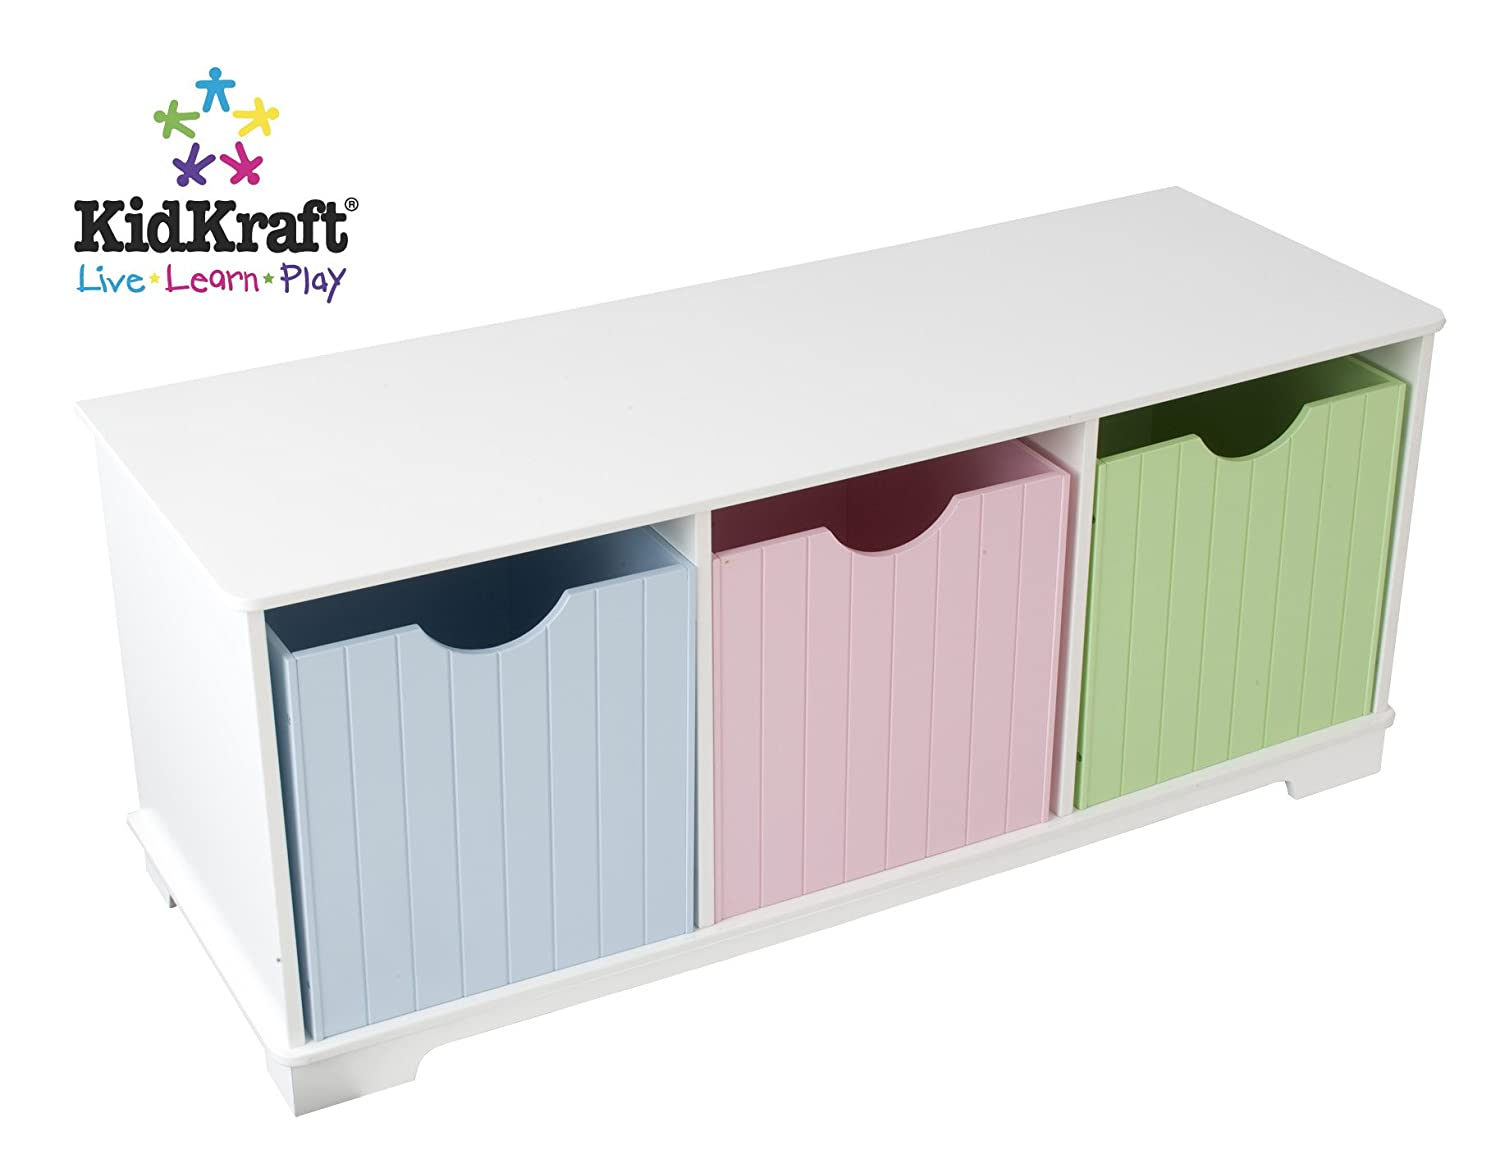 Pleasant Kidkraft Nantucket Wooden Storage Bench With Three Bins Wainscoting Detail Pastel Gmtry Best Dining Table And Chair Ideas Images Gmtryco